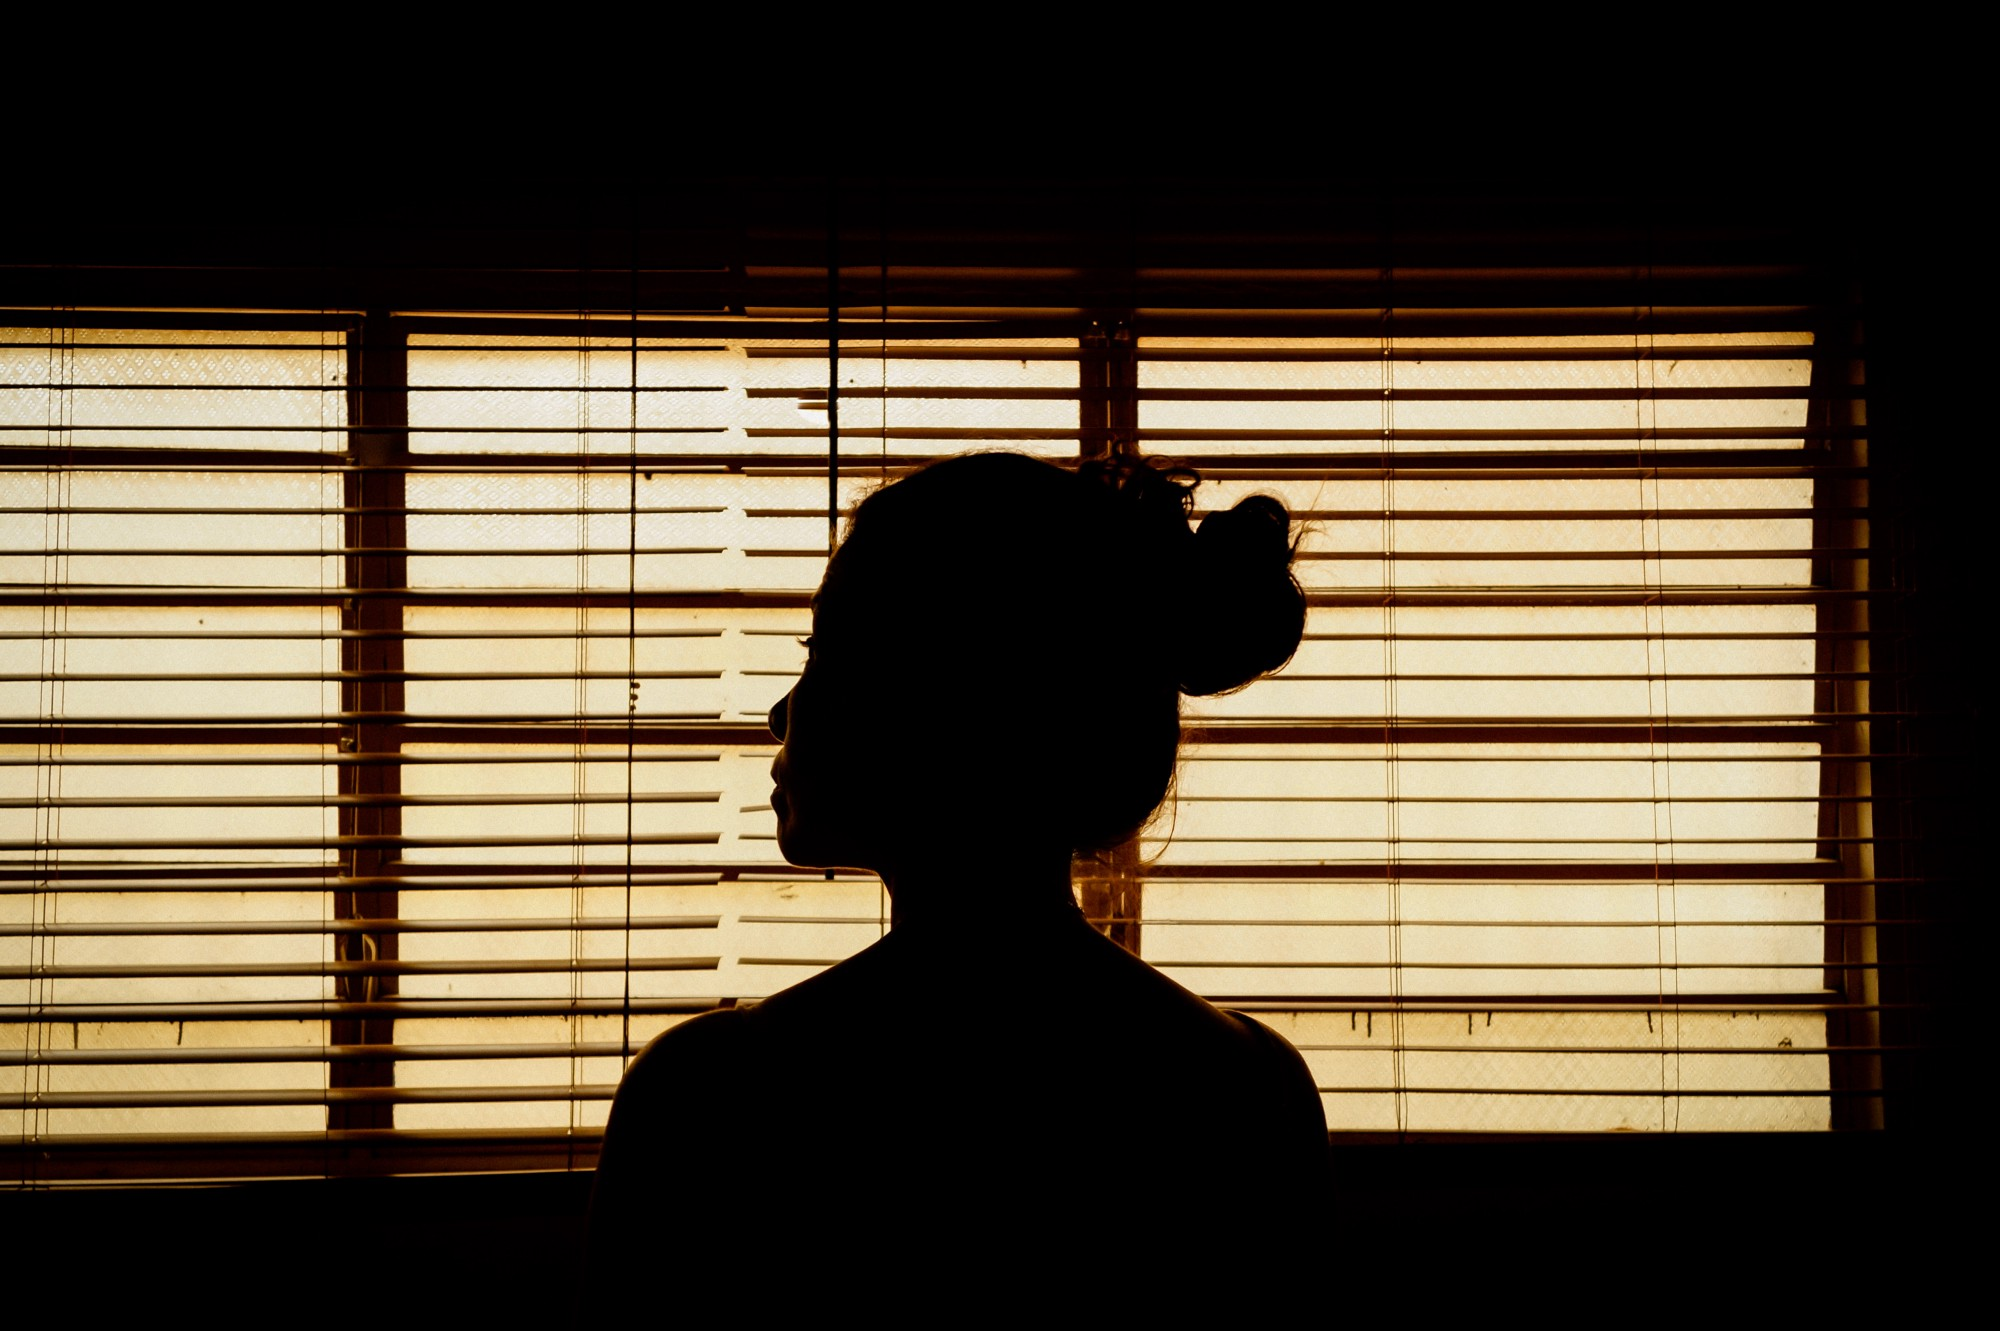 a silhouette of a woman looks out of a window